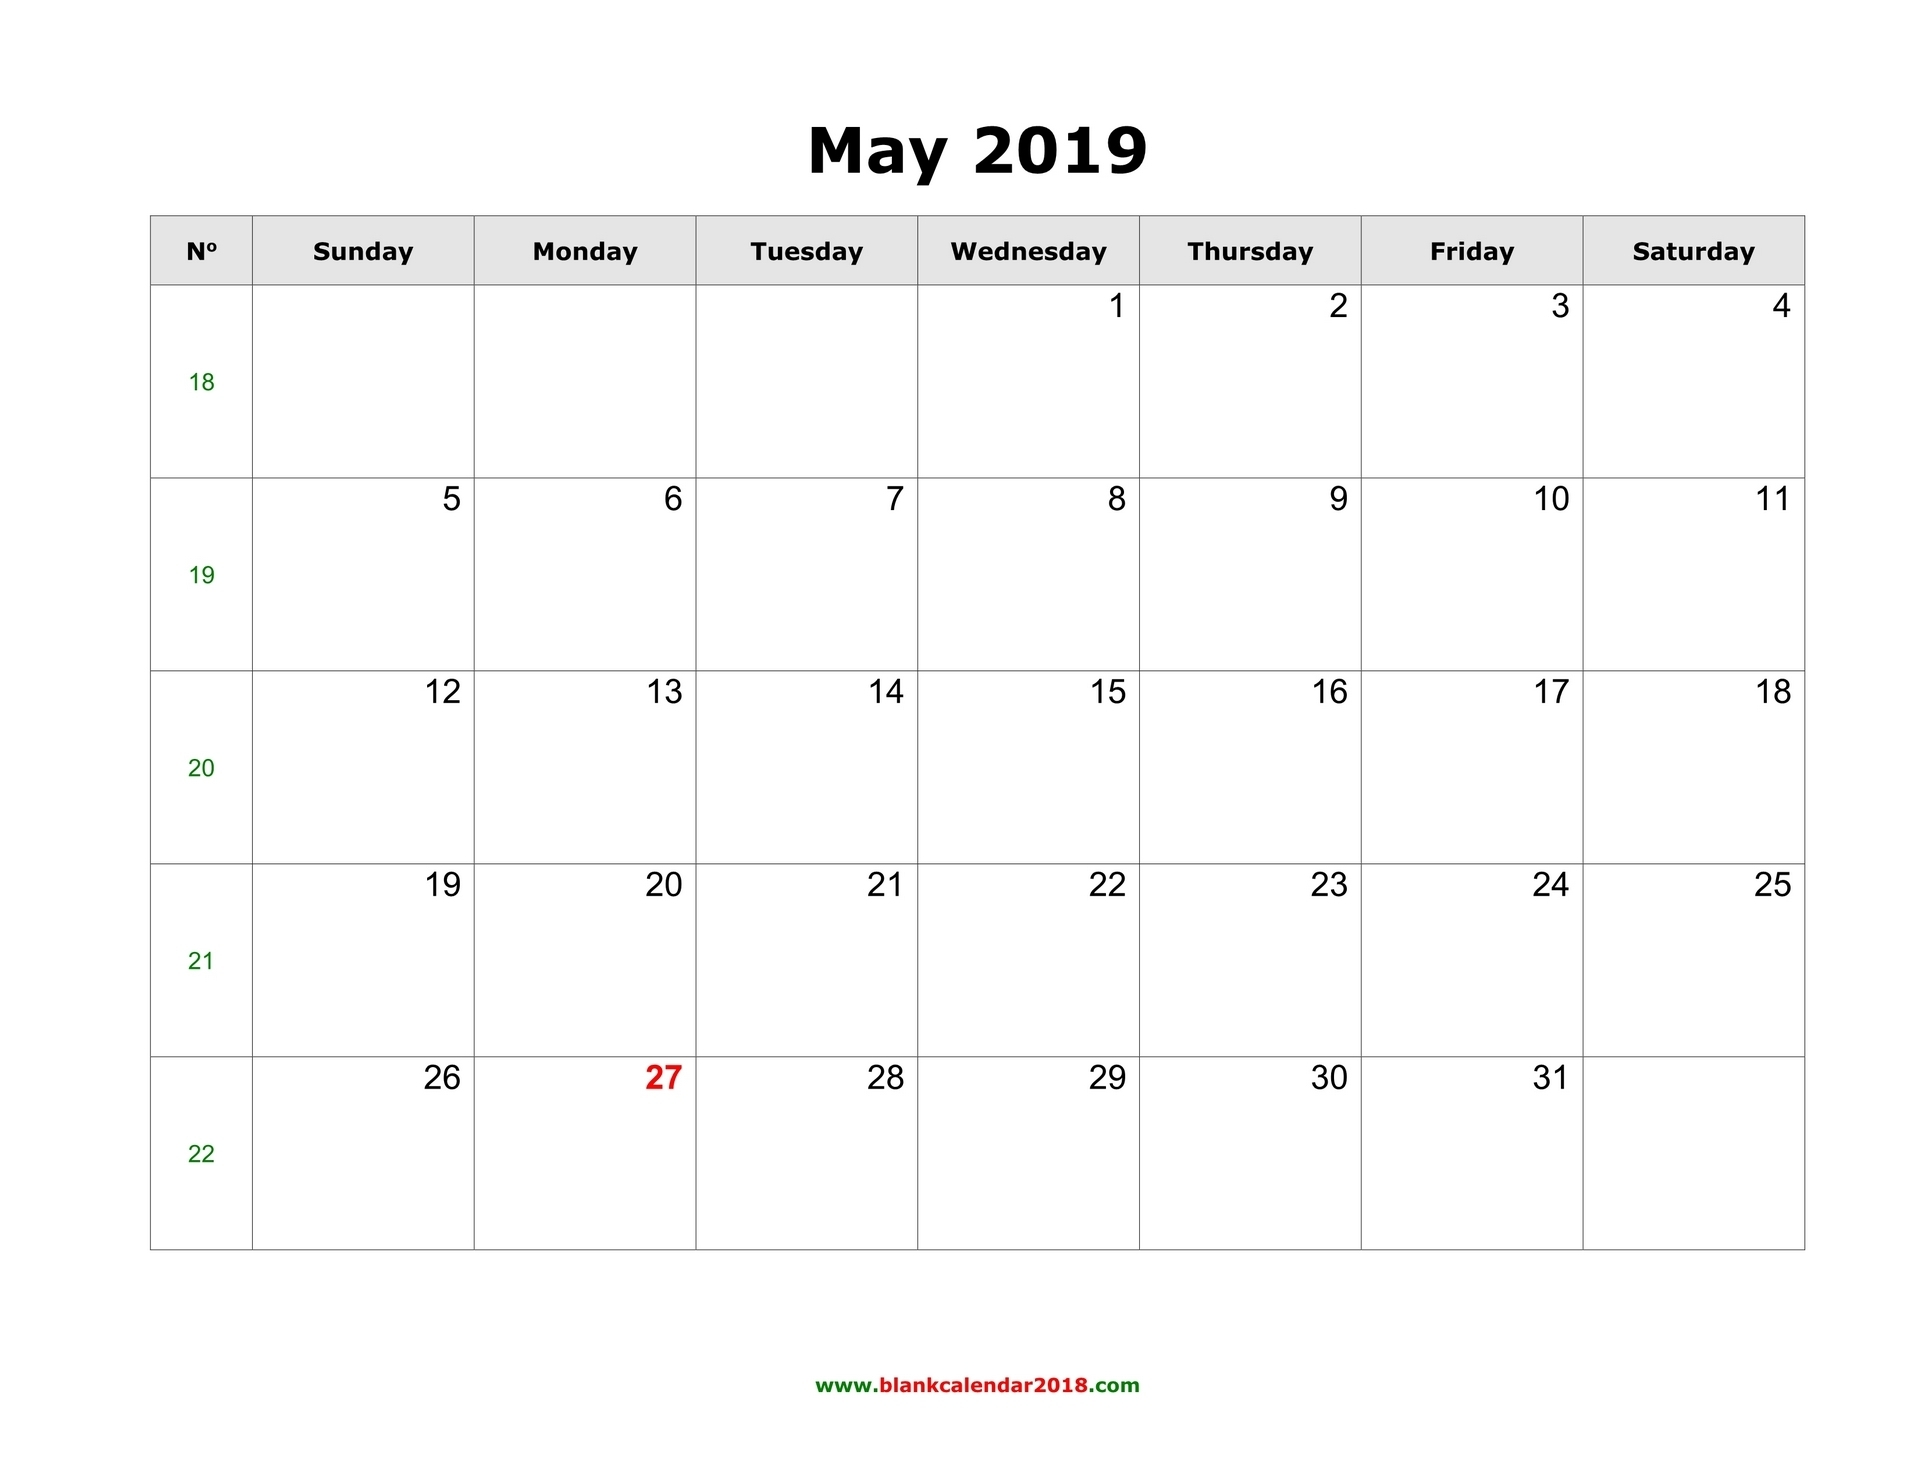 Blank Calendar For May 2019 throughout Blank Calendar To Fill In